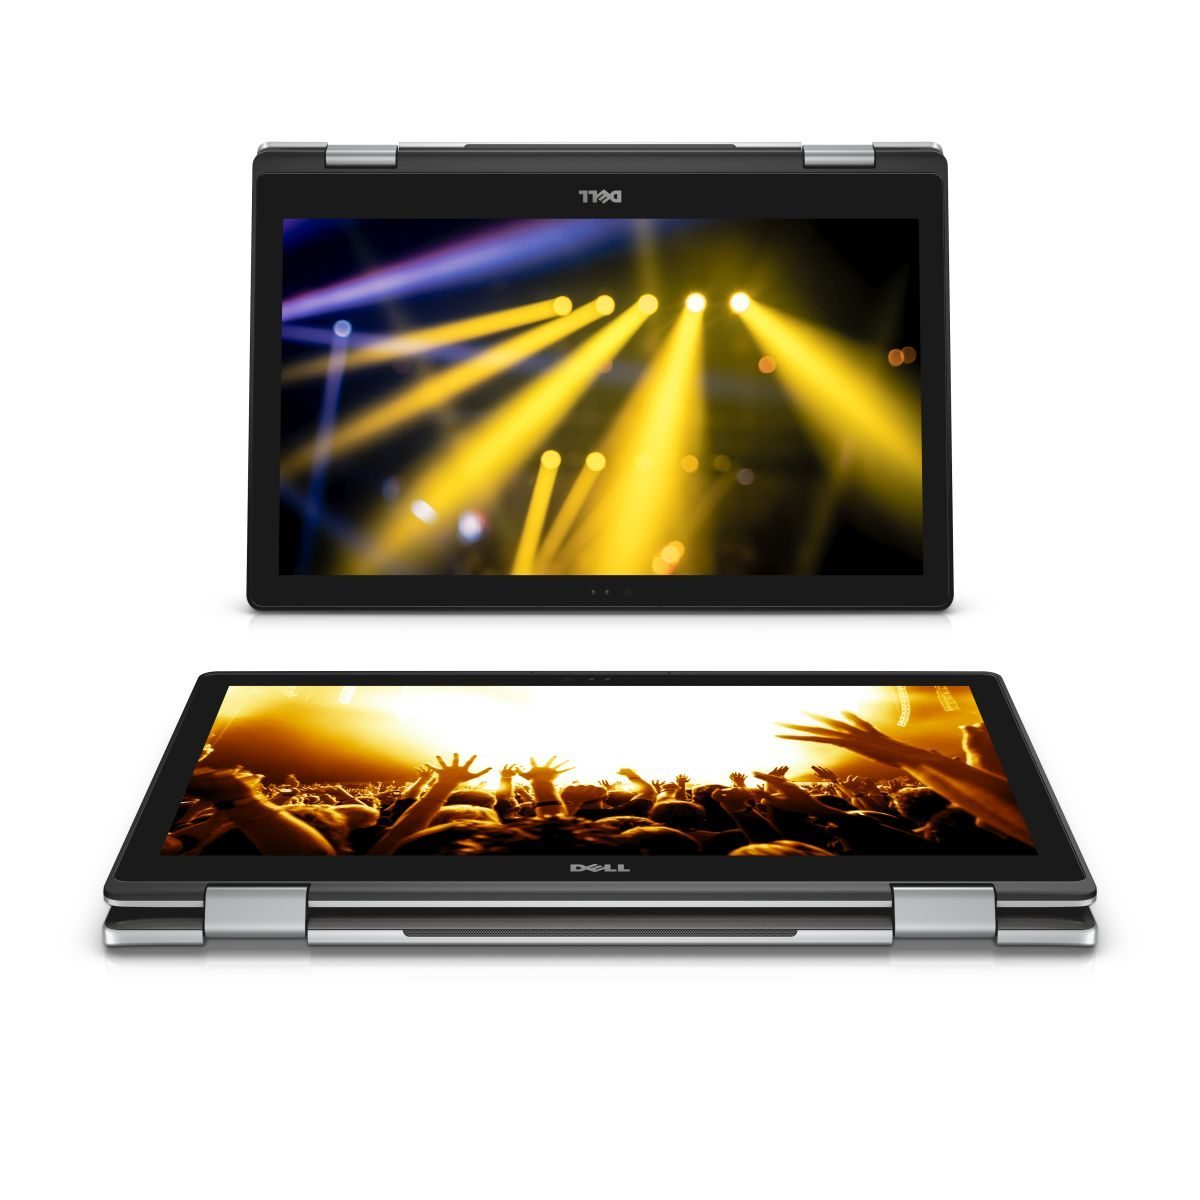 Inspiron 15 7000 Series 2-in-1 Touch Notebooks